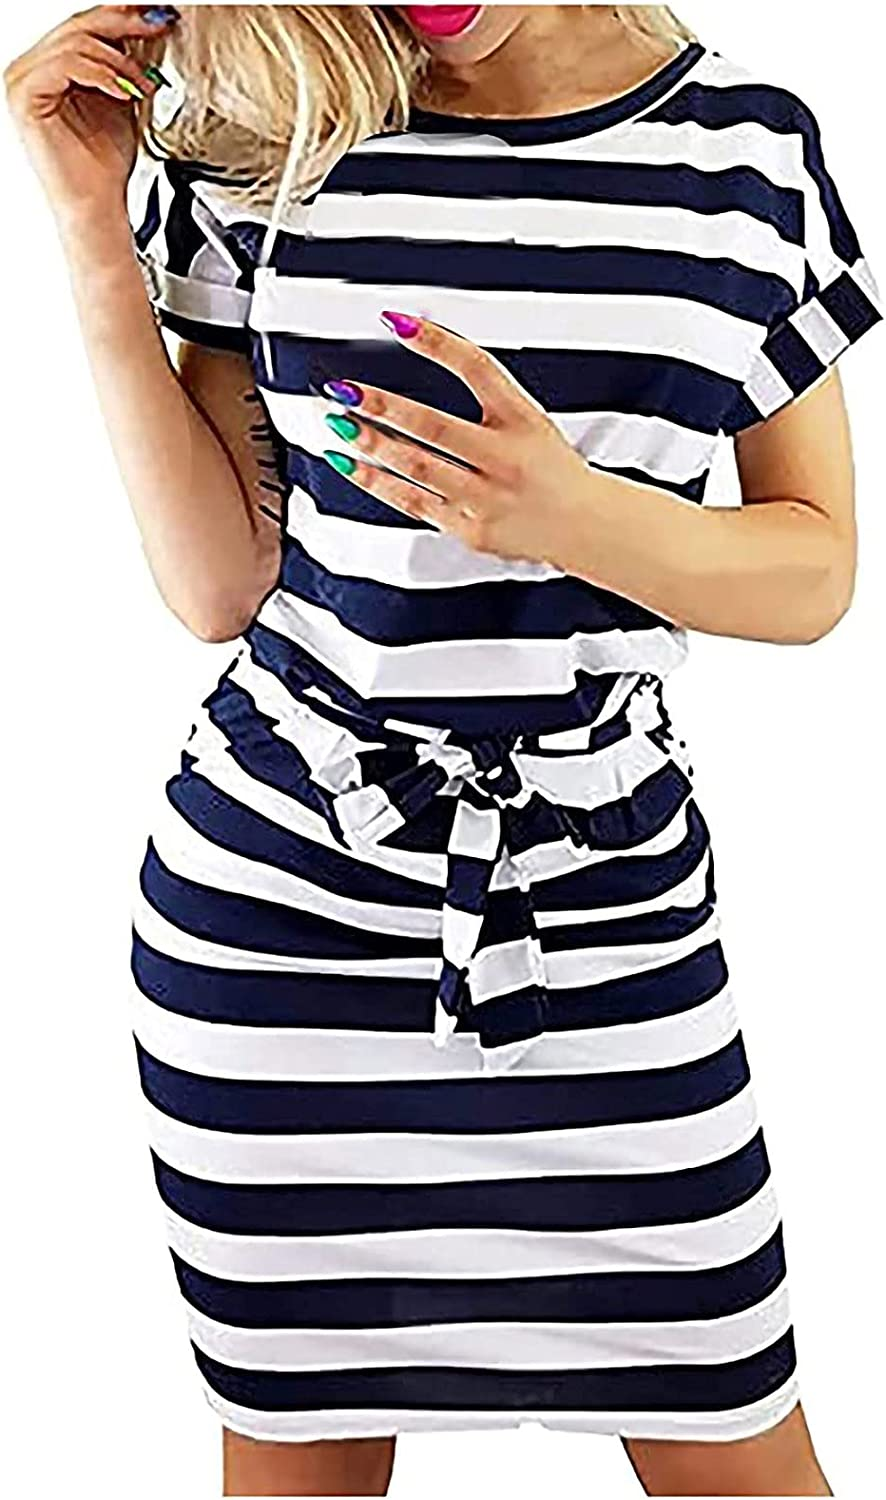 Summer Dresses For Women Striped Graphic Office Dress Short Sleeve Wear To Work Dress Casual Pencil Dress With Belt